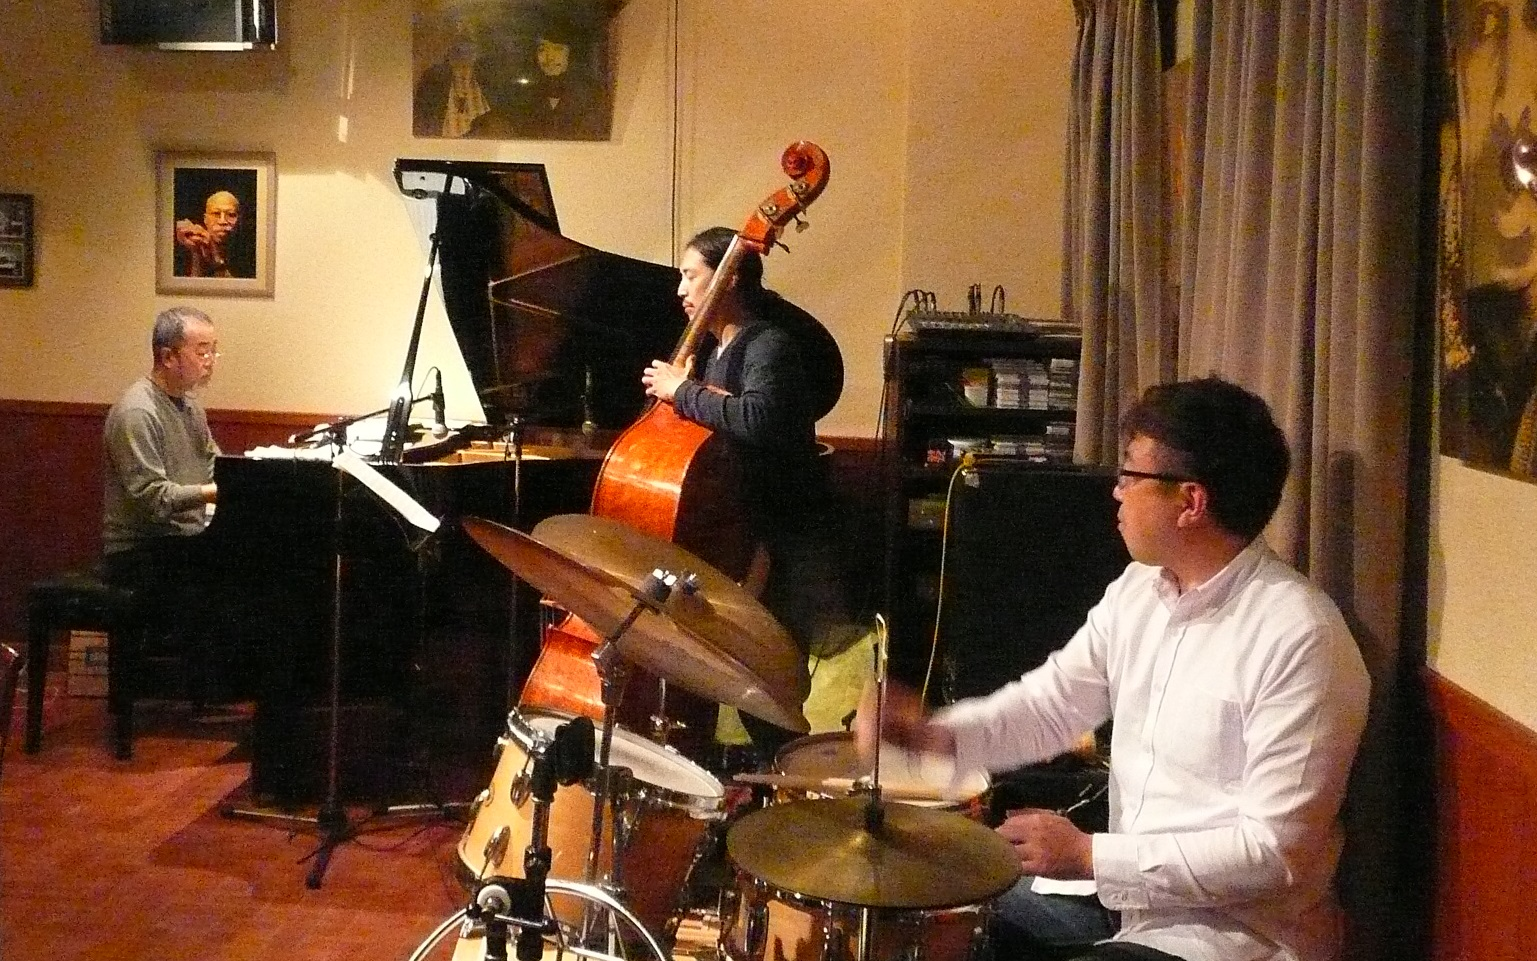 http://jazzclub-overseas.com/blog/jazz_club_overseas/0416msP1100331.JPG